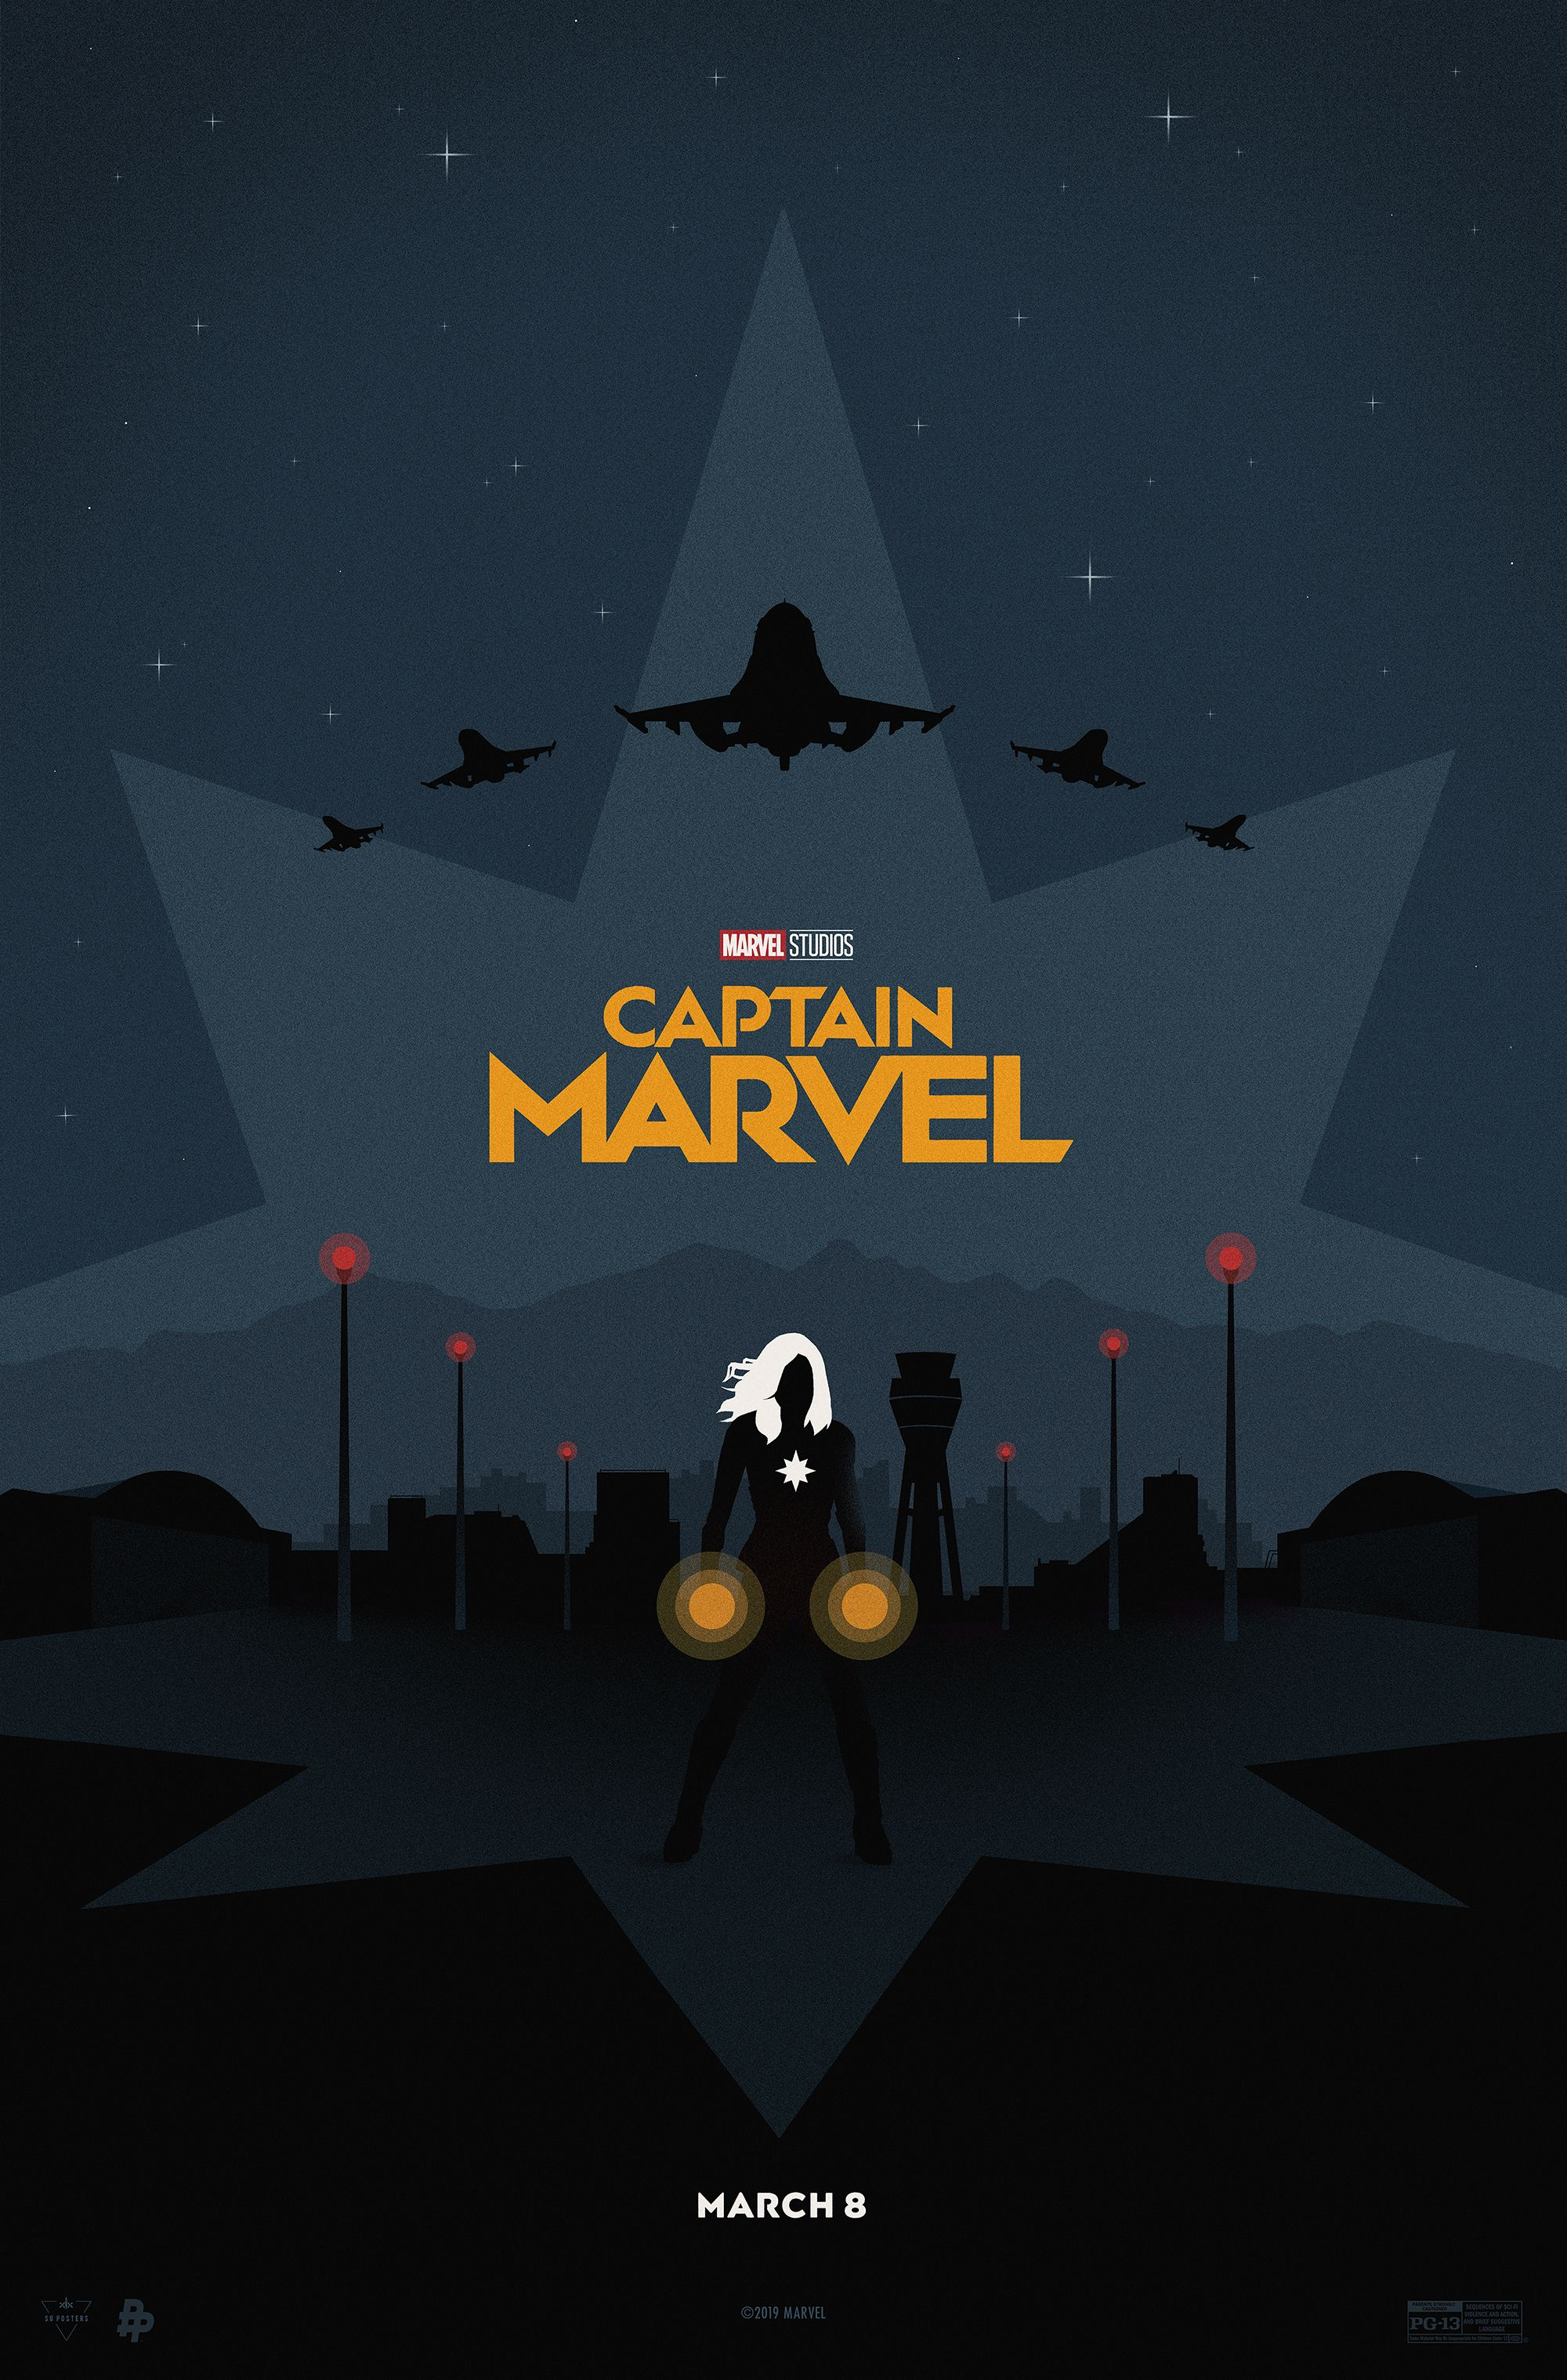 Iphone Marvel Wallpapers Hd From Marvel Com Free Smartphone Wallpaper